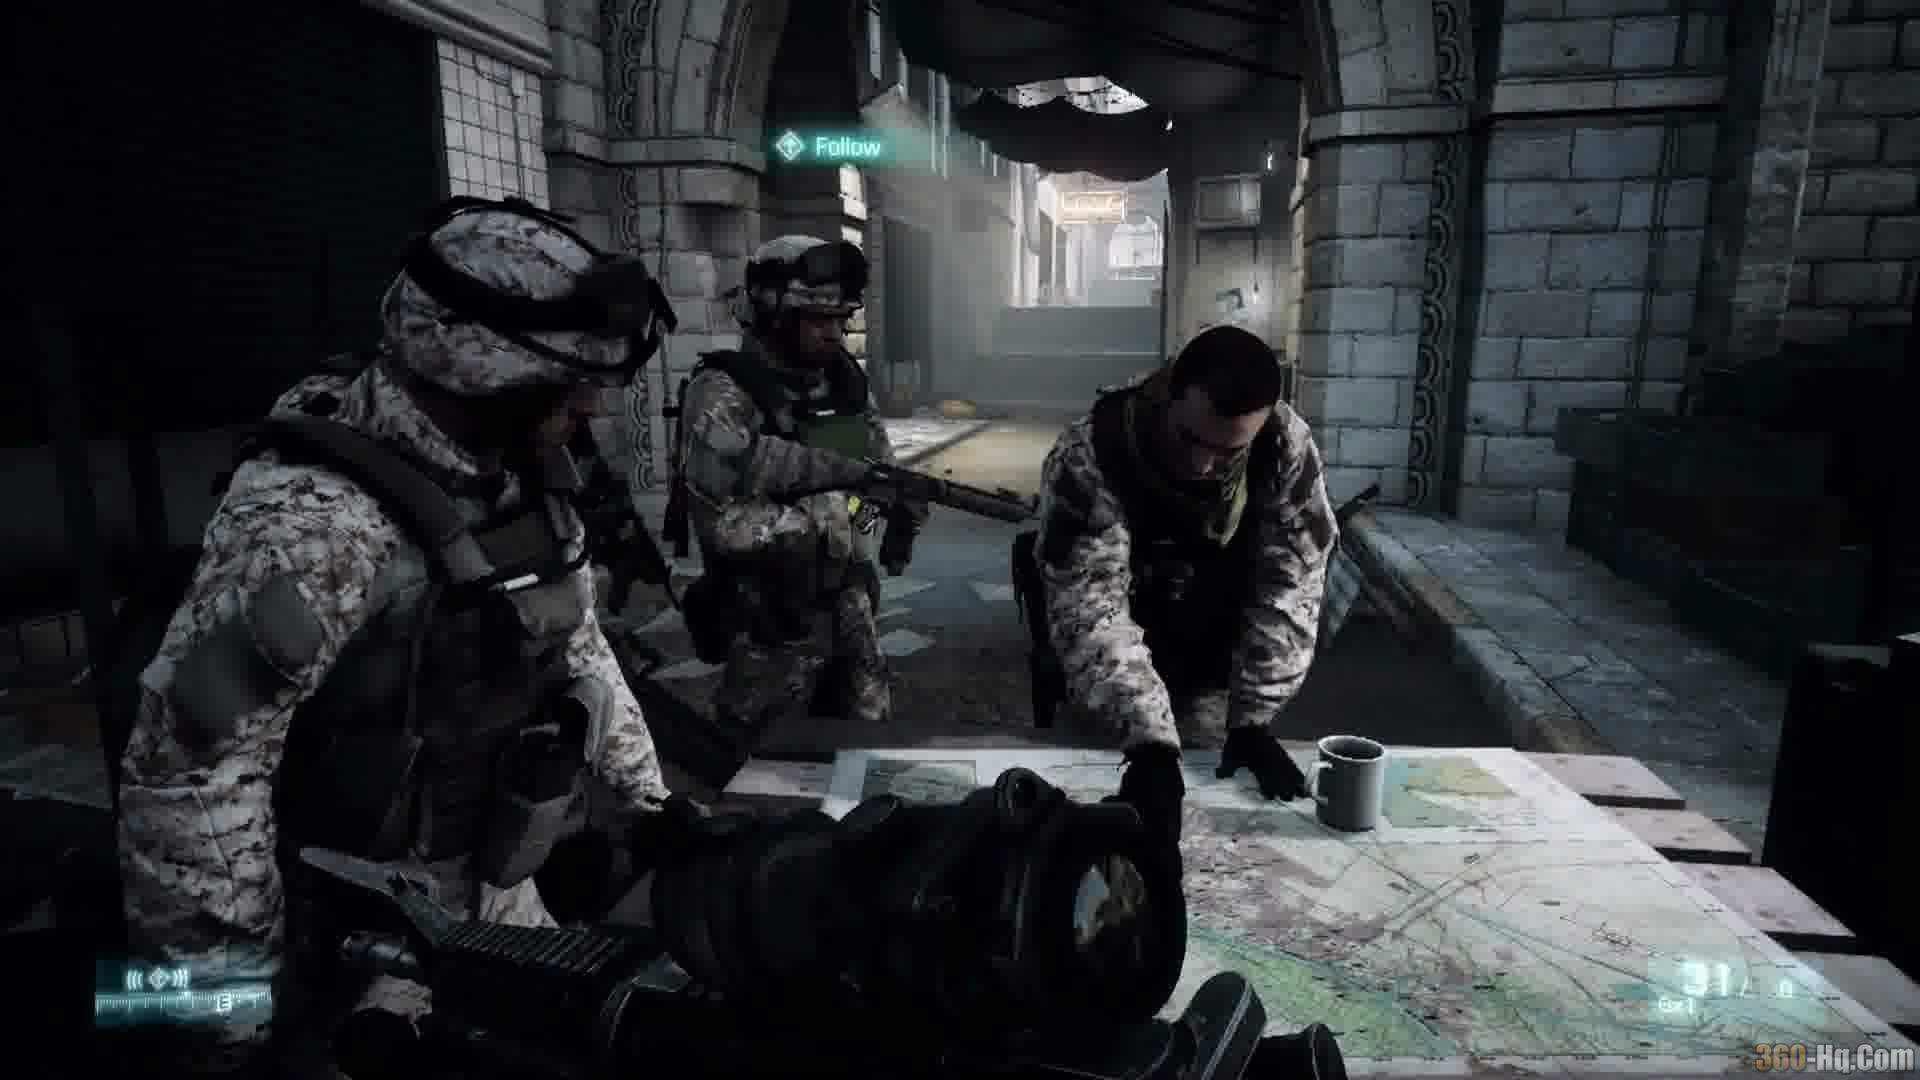 Battlefield 3 Screenshot 15976